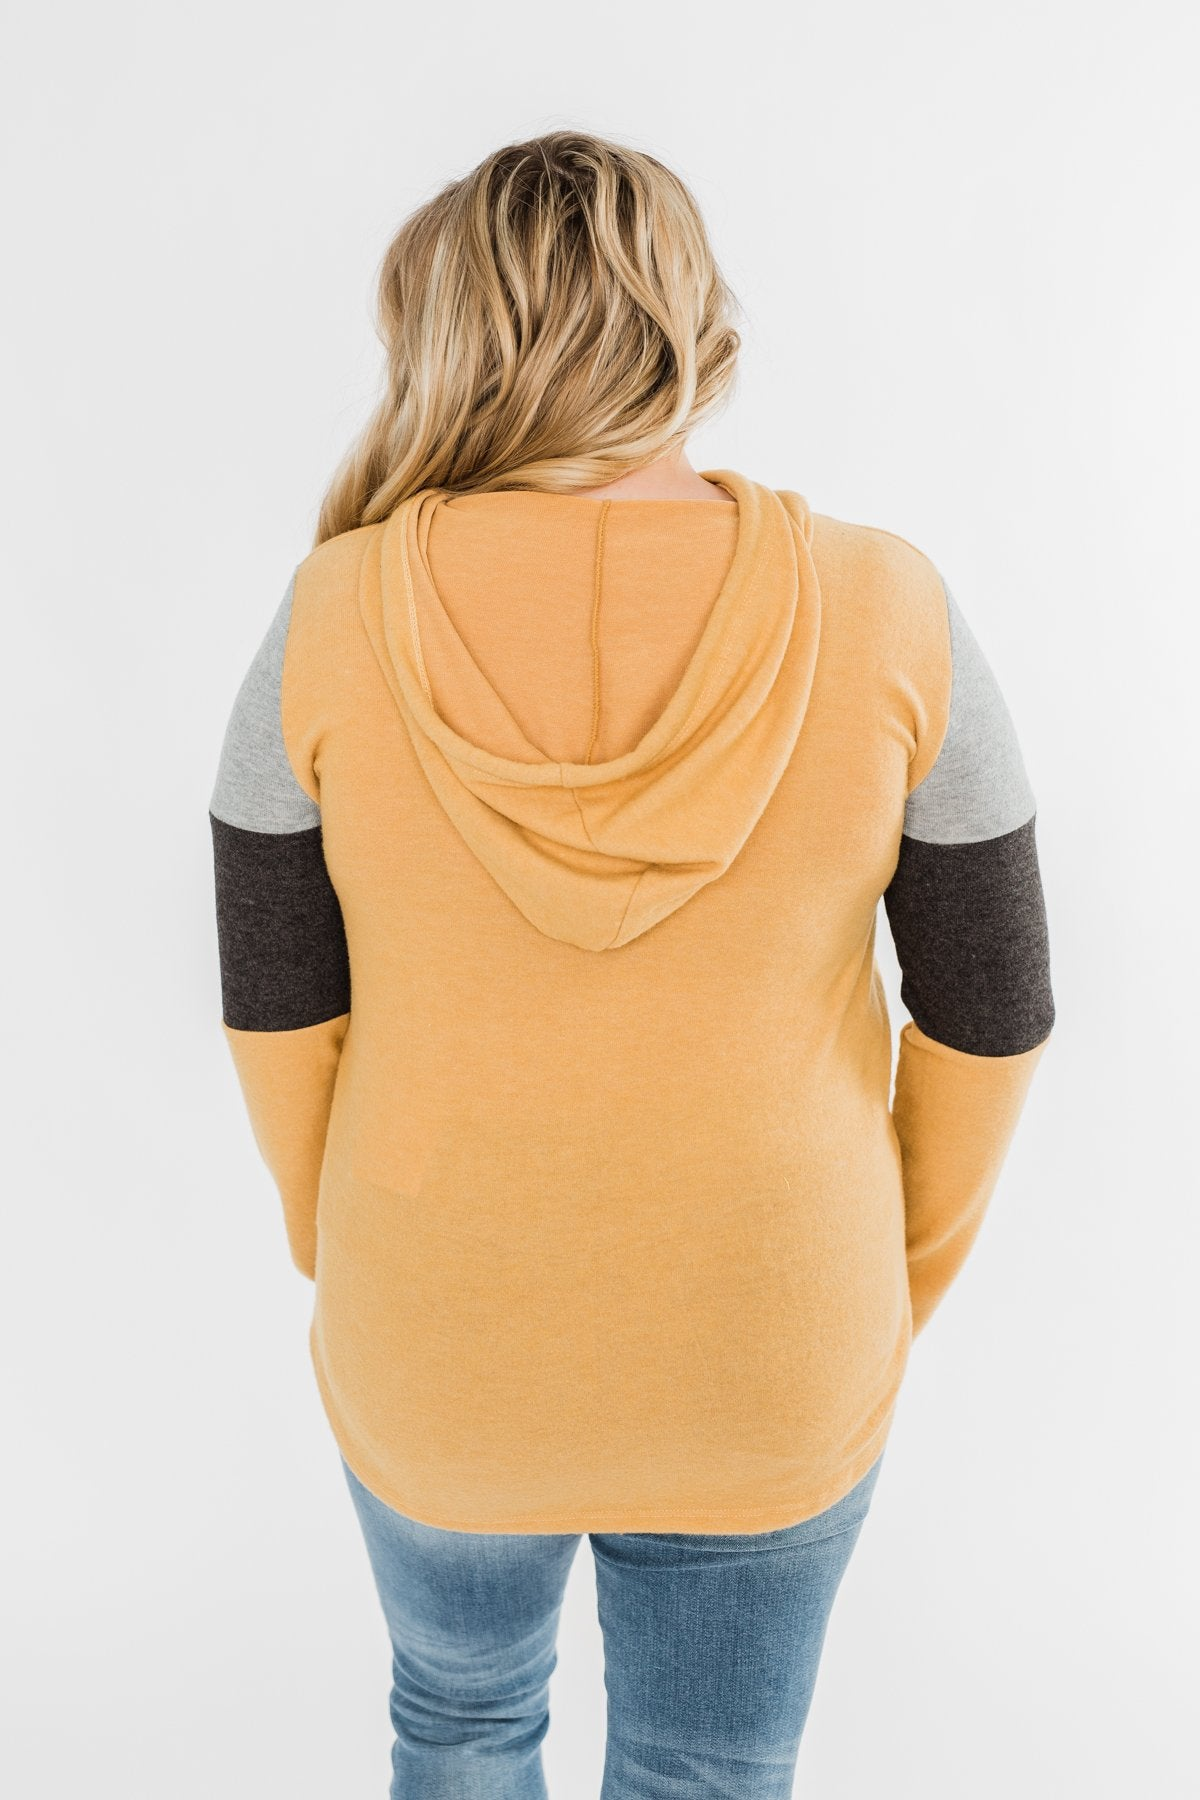 Makes Me Happy Color Block Hoodie- Mustard